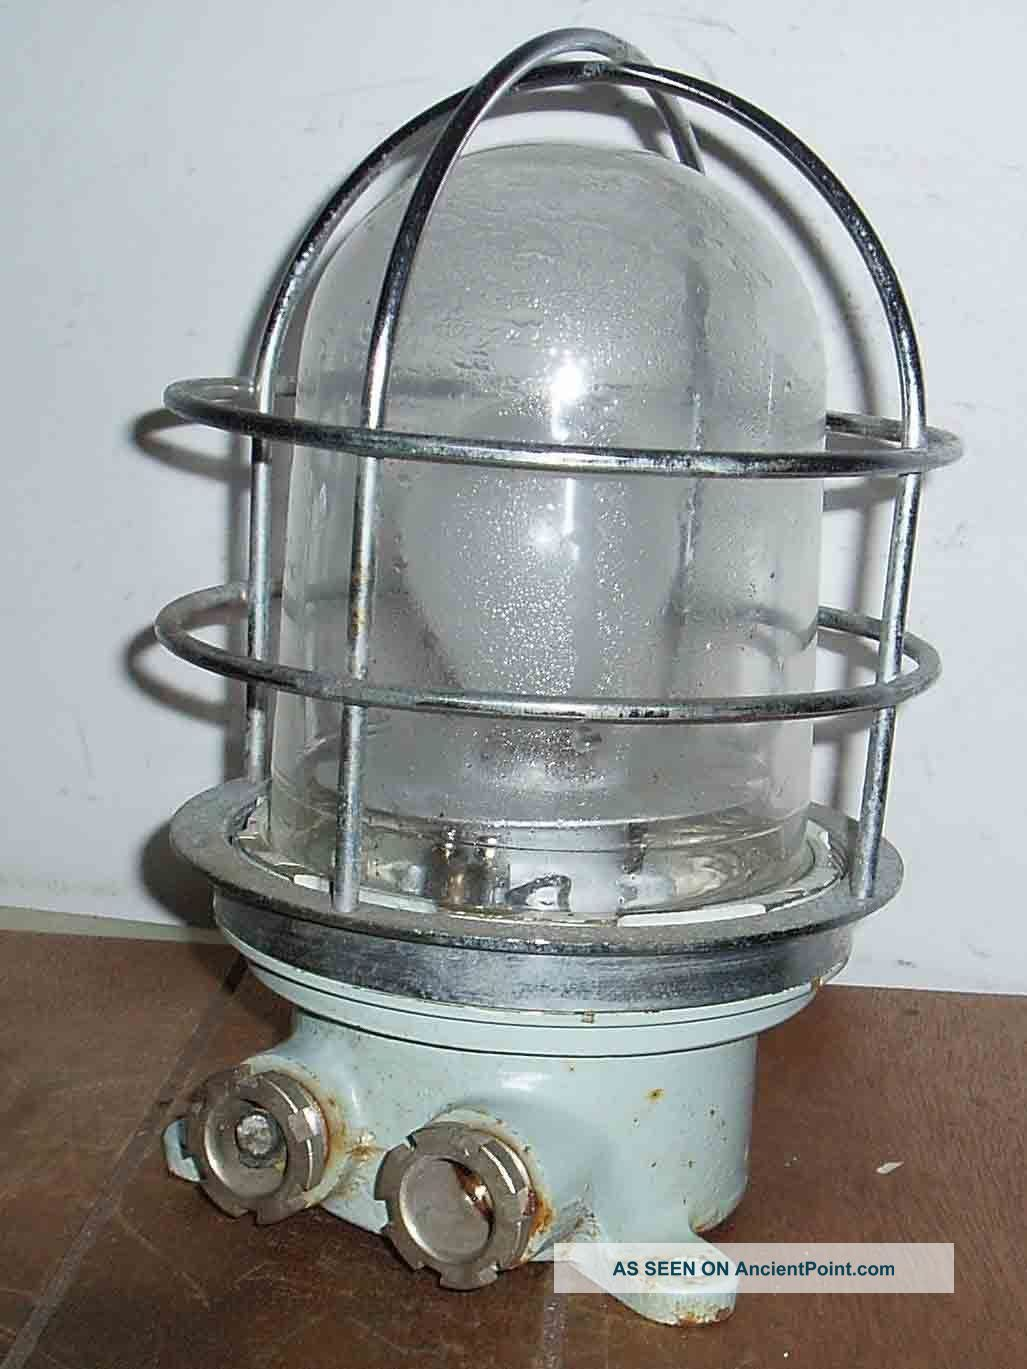 Vintage Maritime Ships Caged Wall Or Ceiling Lamp Water Proof Outdoor Or Indoor Uncategorized photo